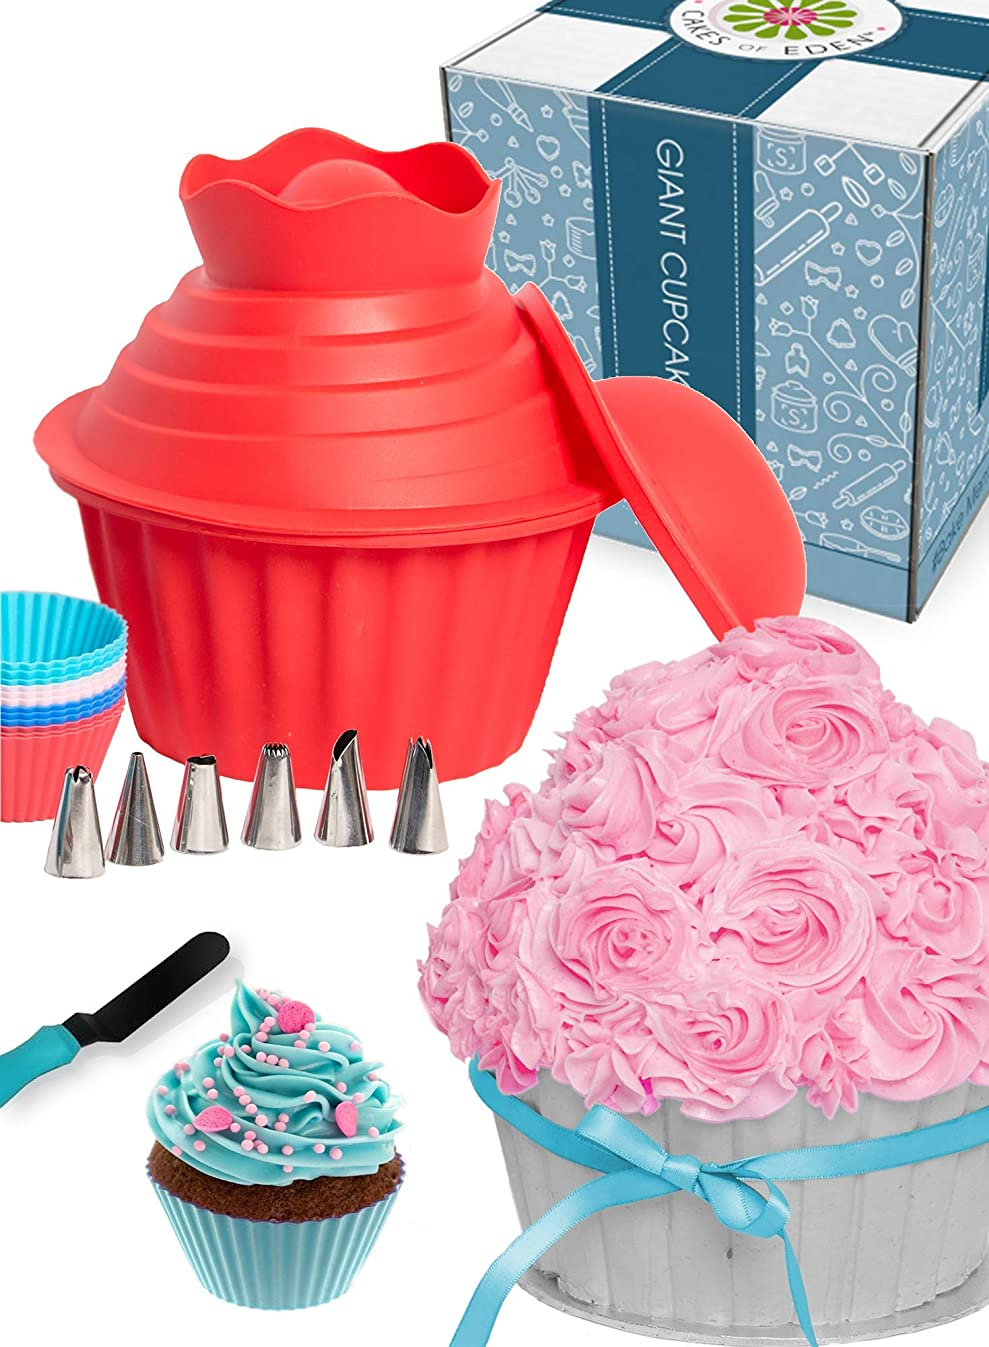 29pcs Giant Cupcake Pan Silicone Molds - Extra Huge Oversized Bakeware Cup Mold. Large Smash Cake Big Jumbo Muffin Baking Decorating Supplies Kit Accessories Frosting Icing Piping Bags Tips Cups